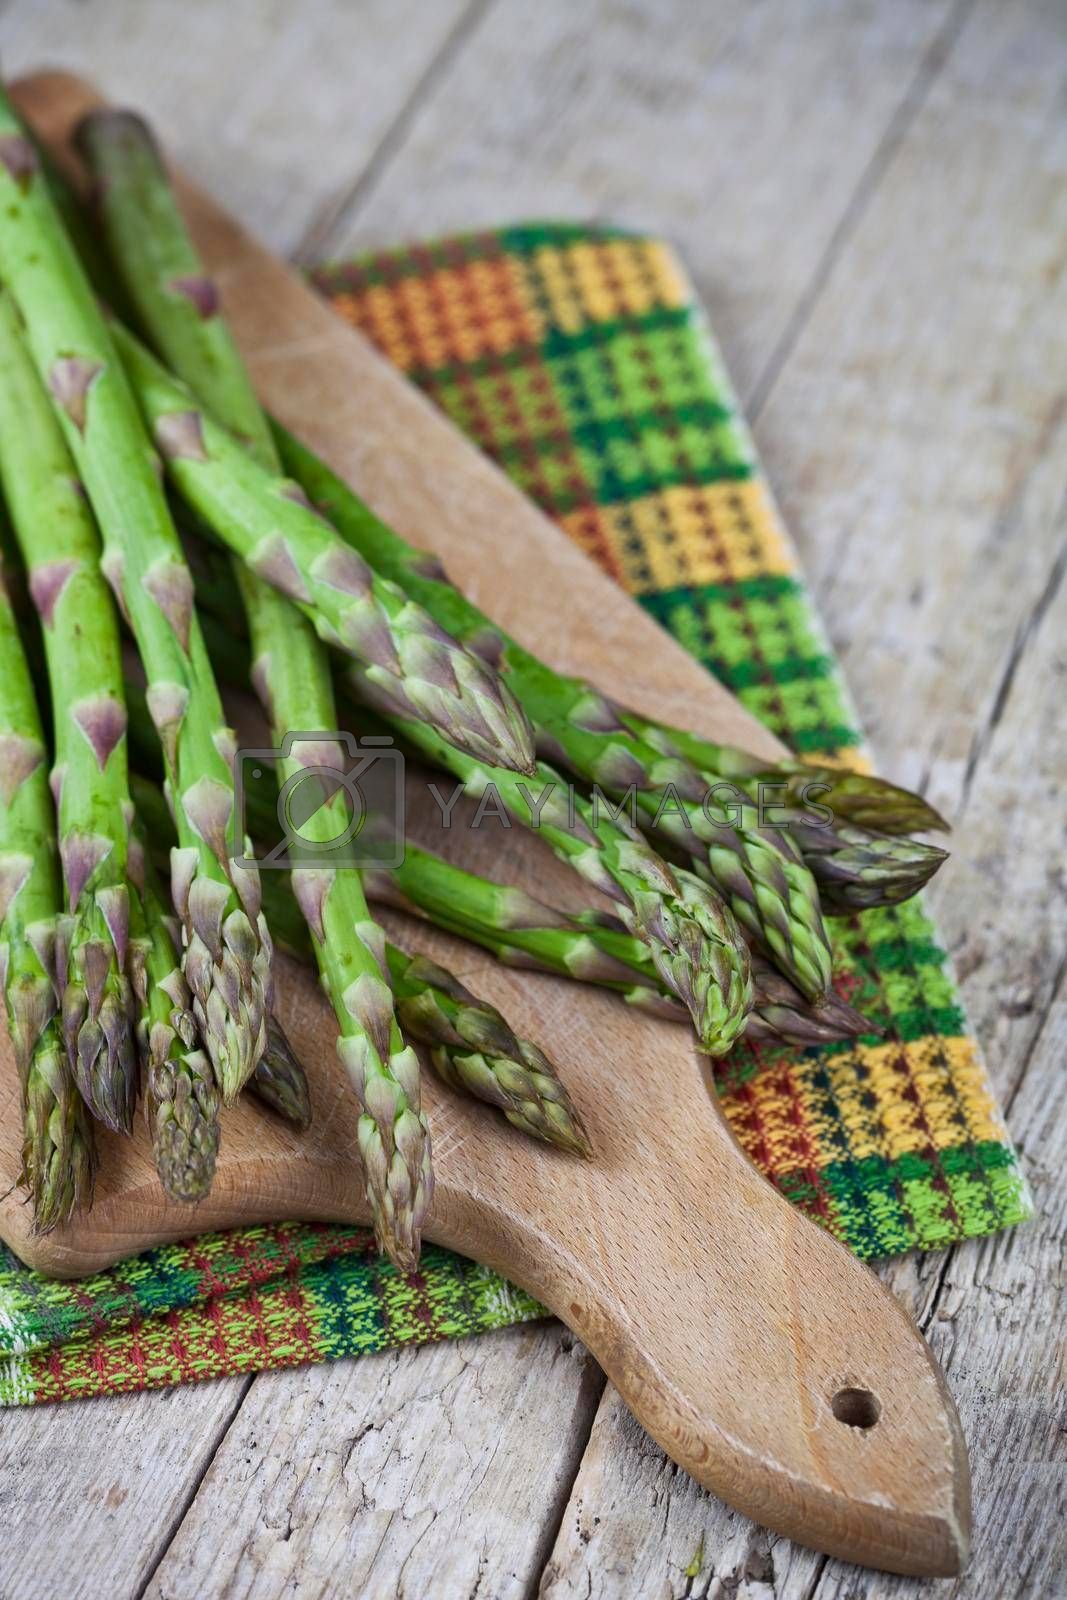 Organic raw garden asparagus on cutting board on rustic wooden table background. Green spring vegetables and cotton napkin. Edible sprouts of asparagus.